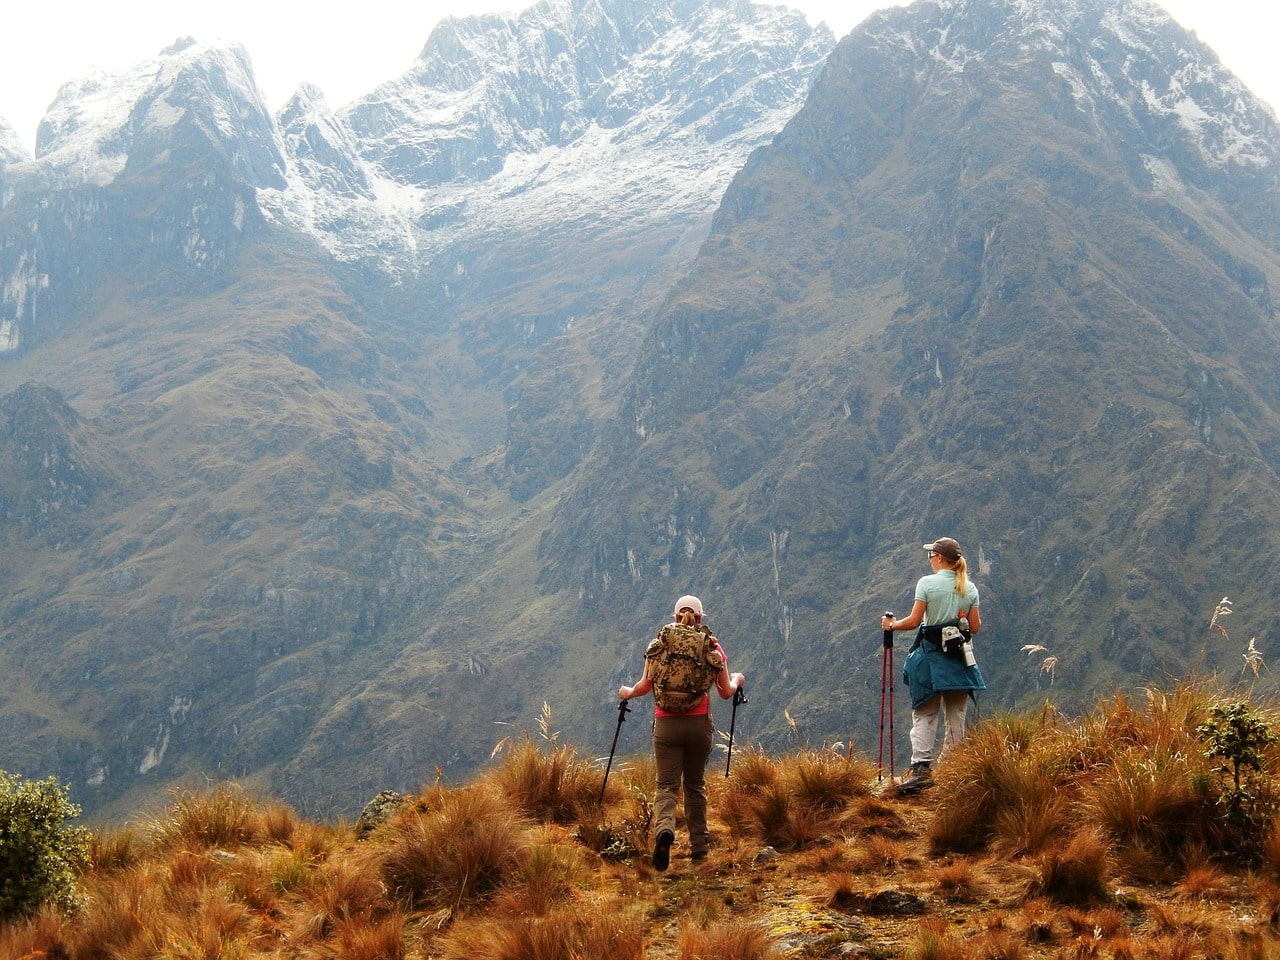 Hike the Inca Trail: 6 Things You Need to Know Before You Go